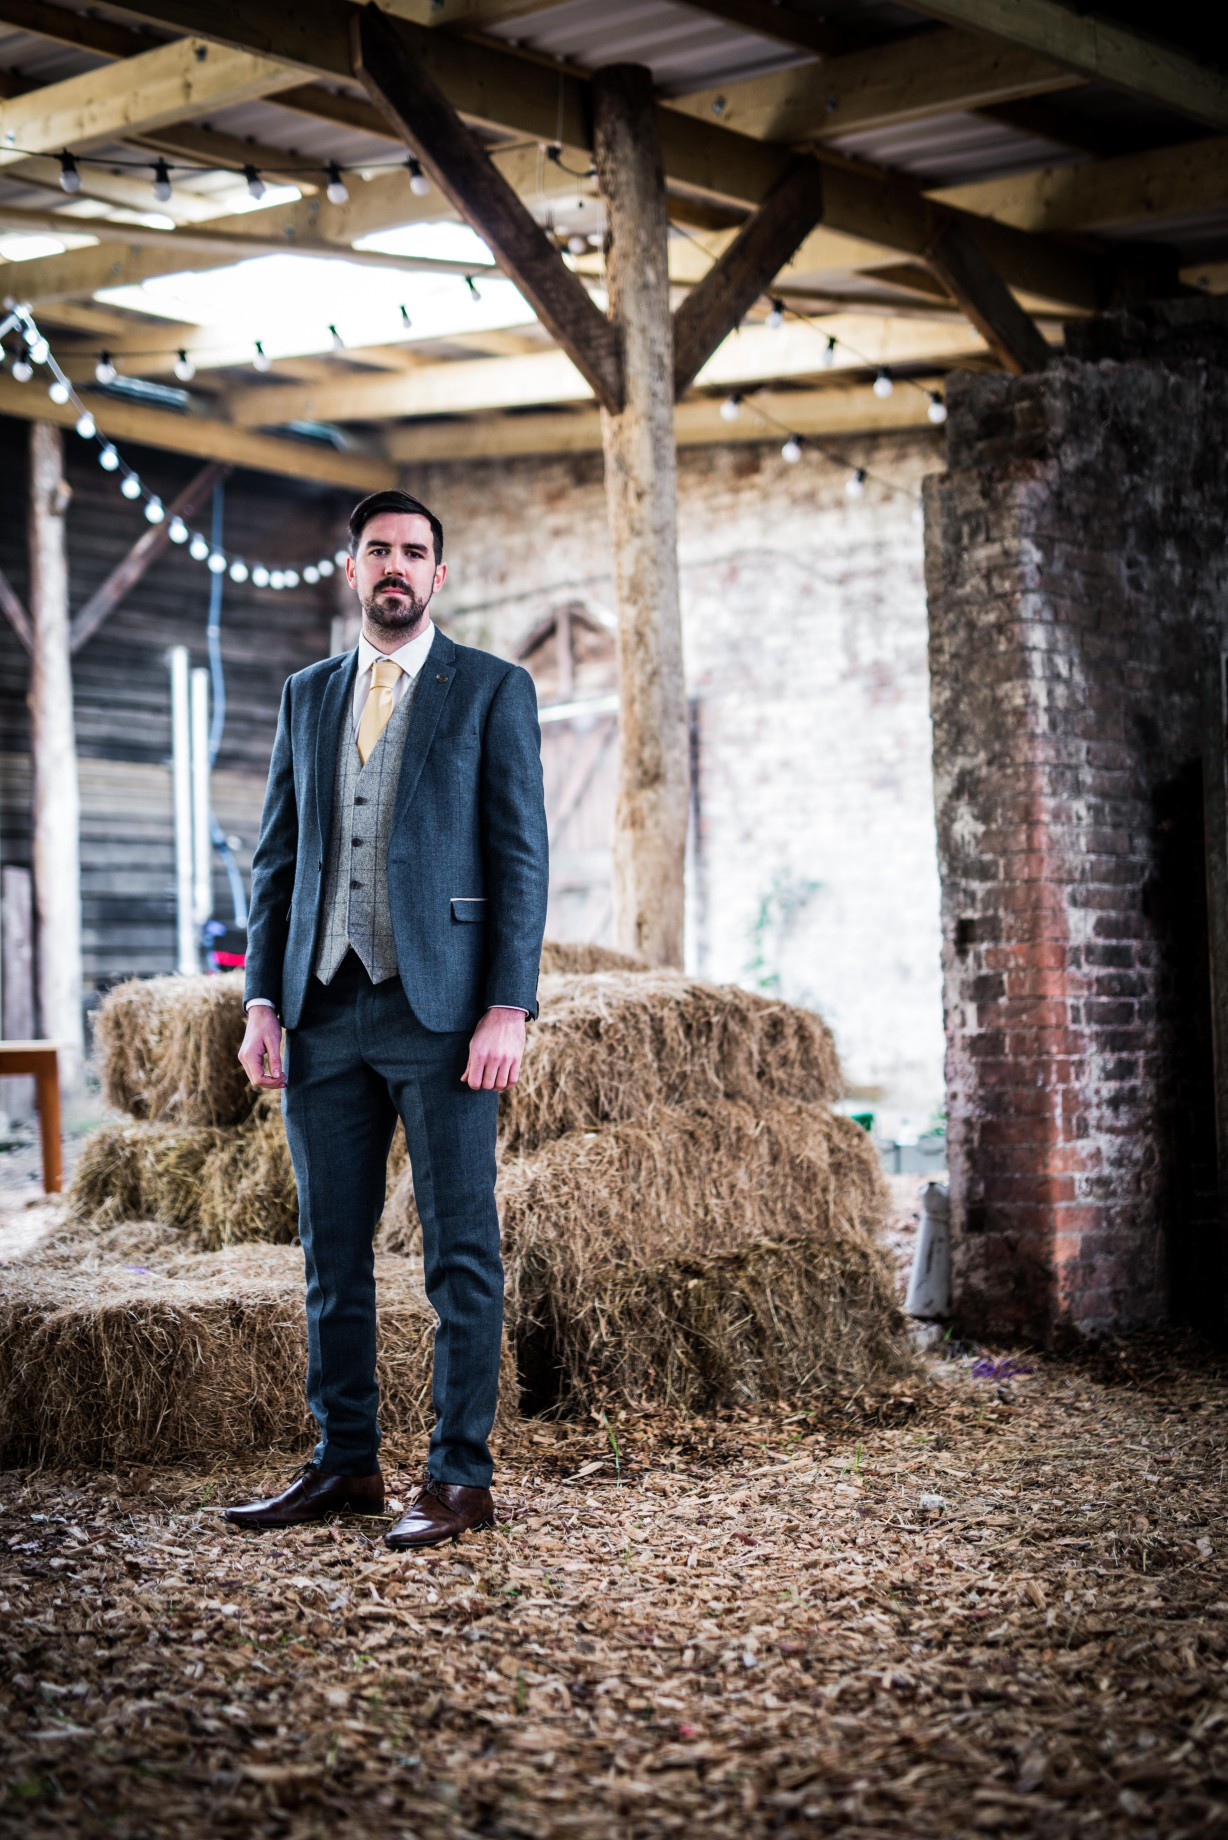 Peacock barns - alternative unconventional wedding photoshoot - rustic decadent - groom - barn